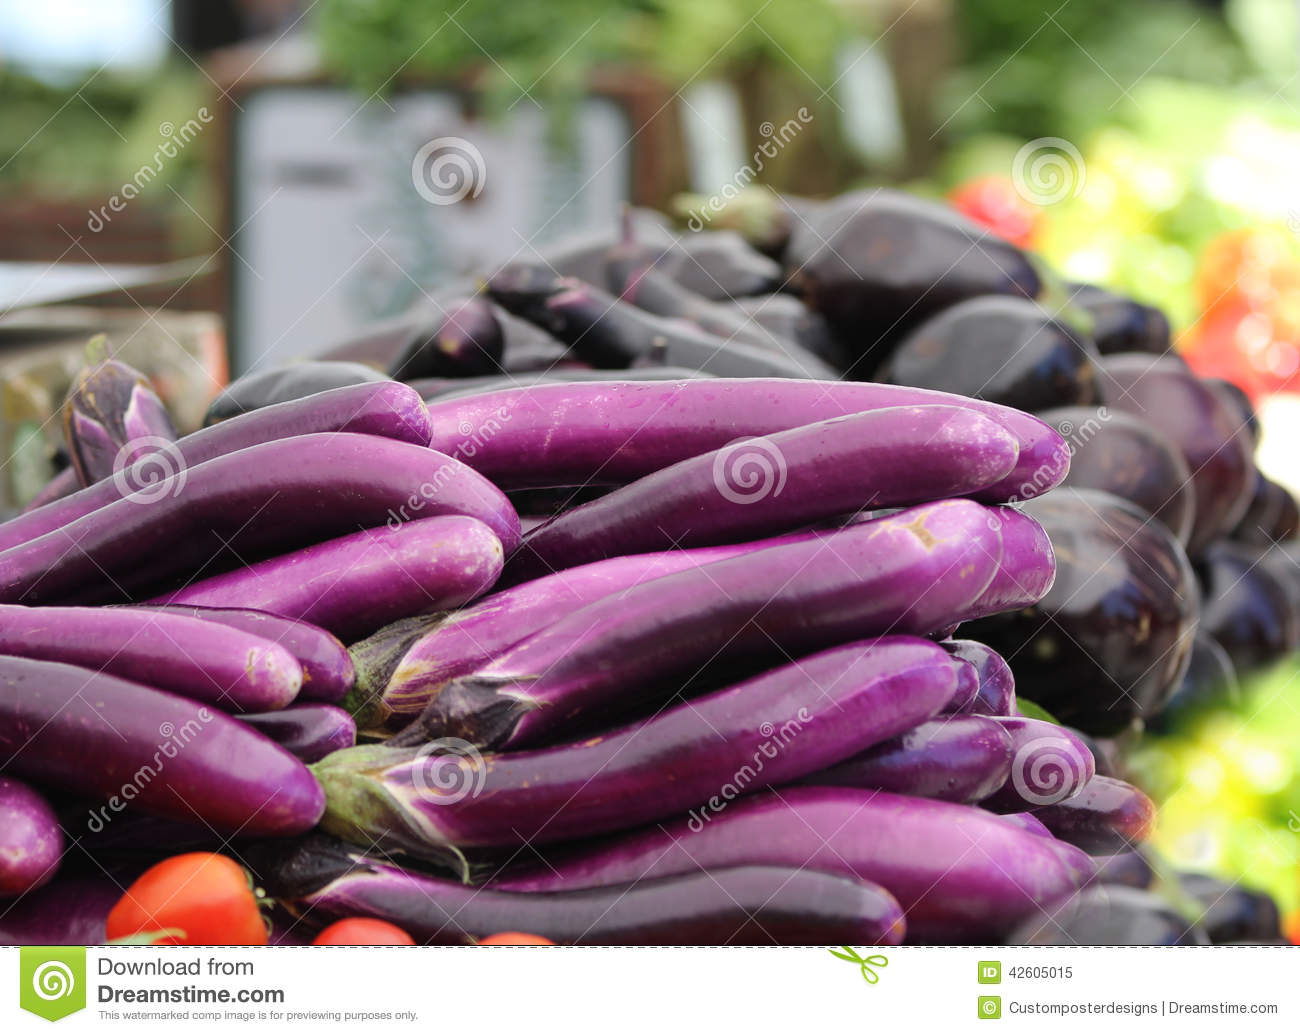 Download Healthy purple eggplant. stock image. Image of colors - 42605015